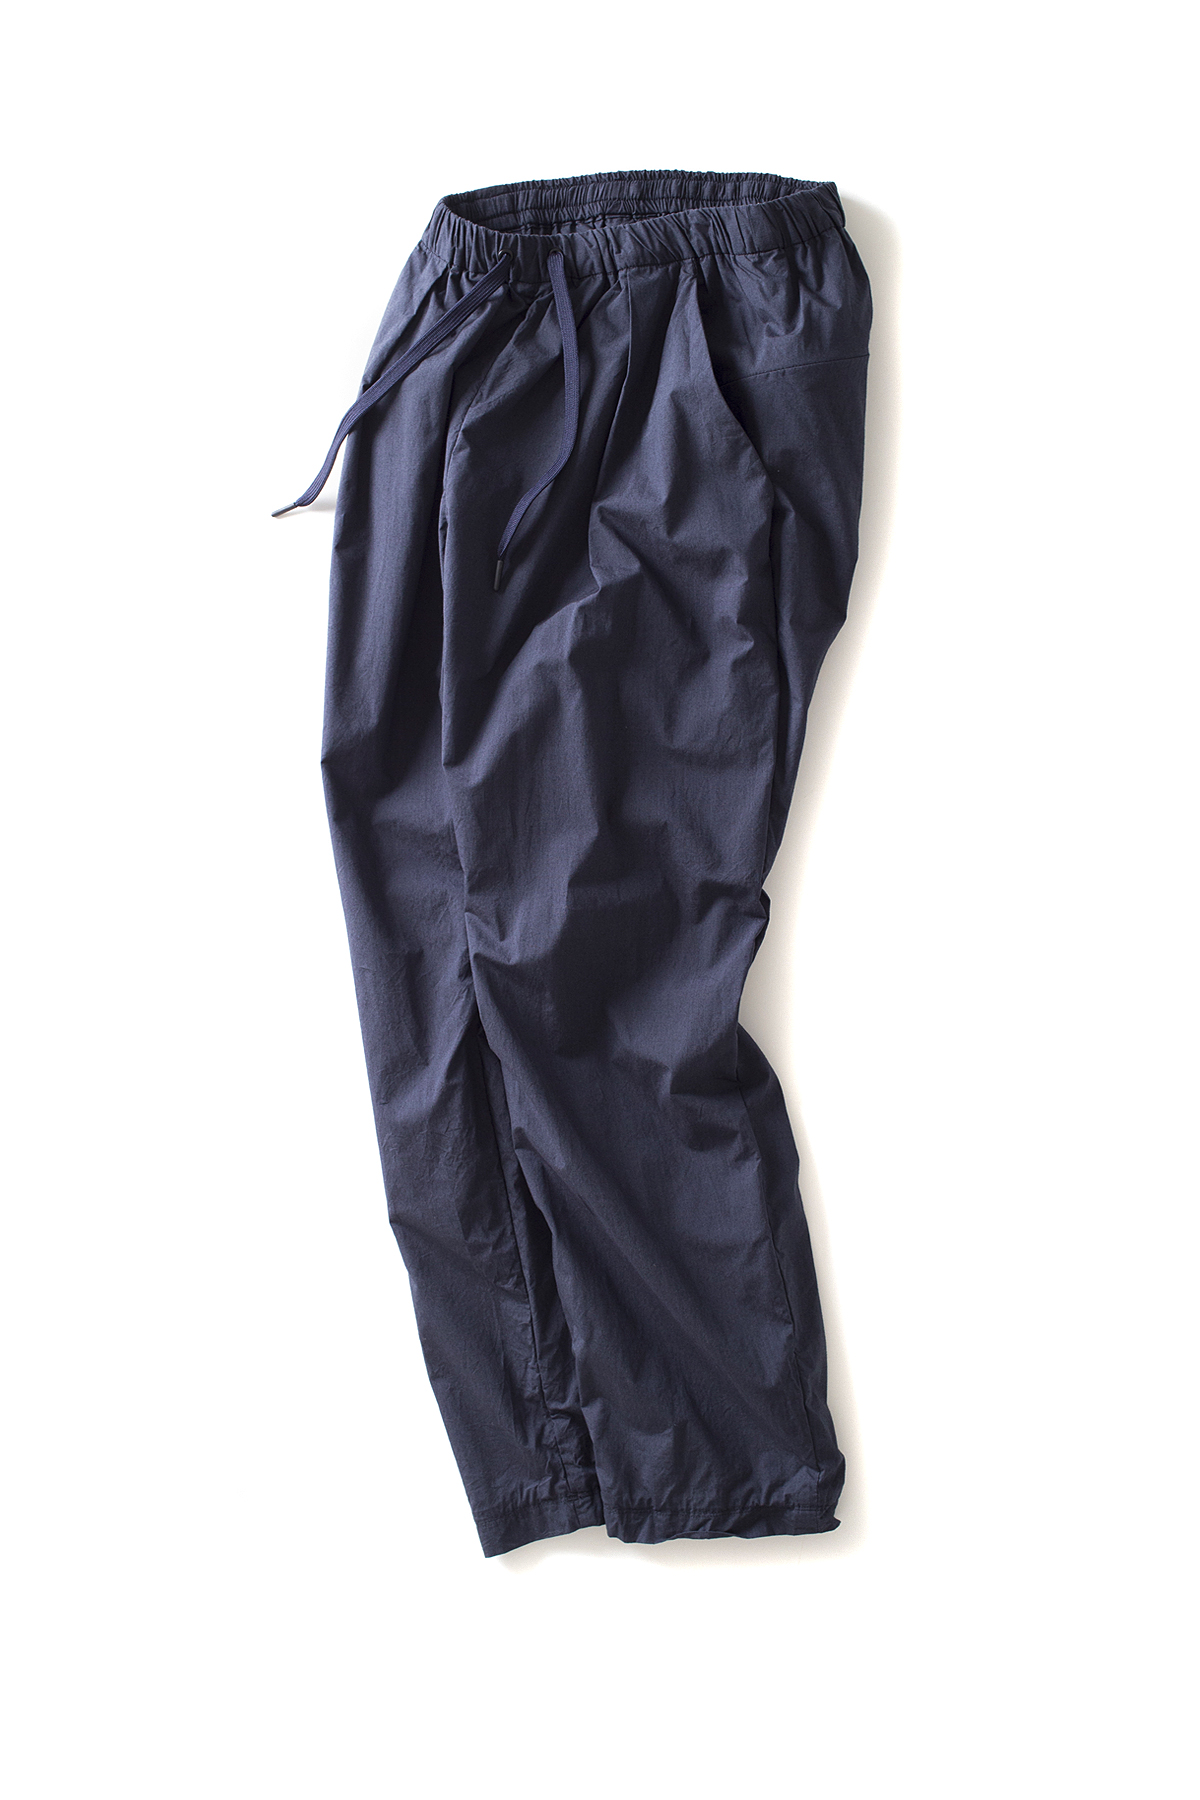 TEATORA : Wallet Pants CARGO H (Navy)